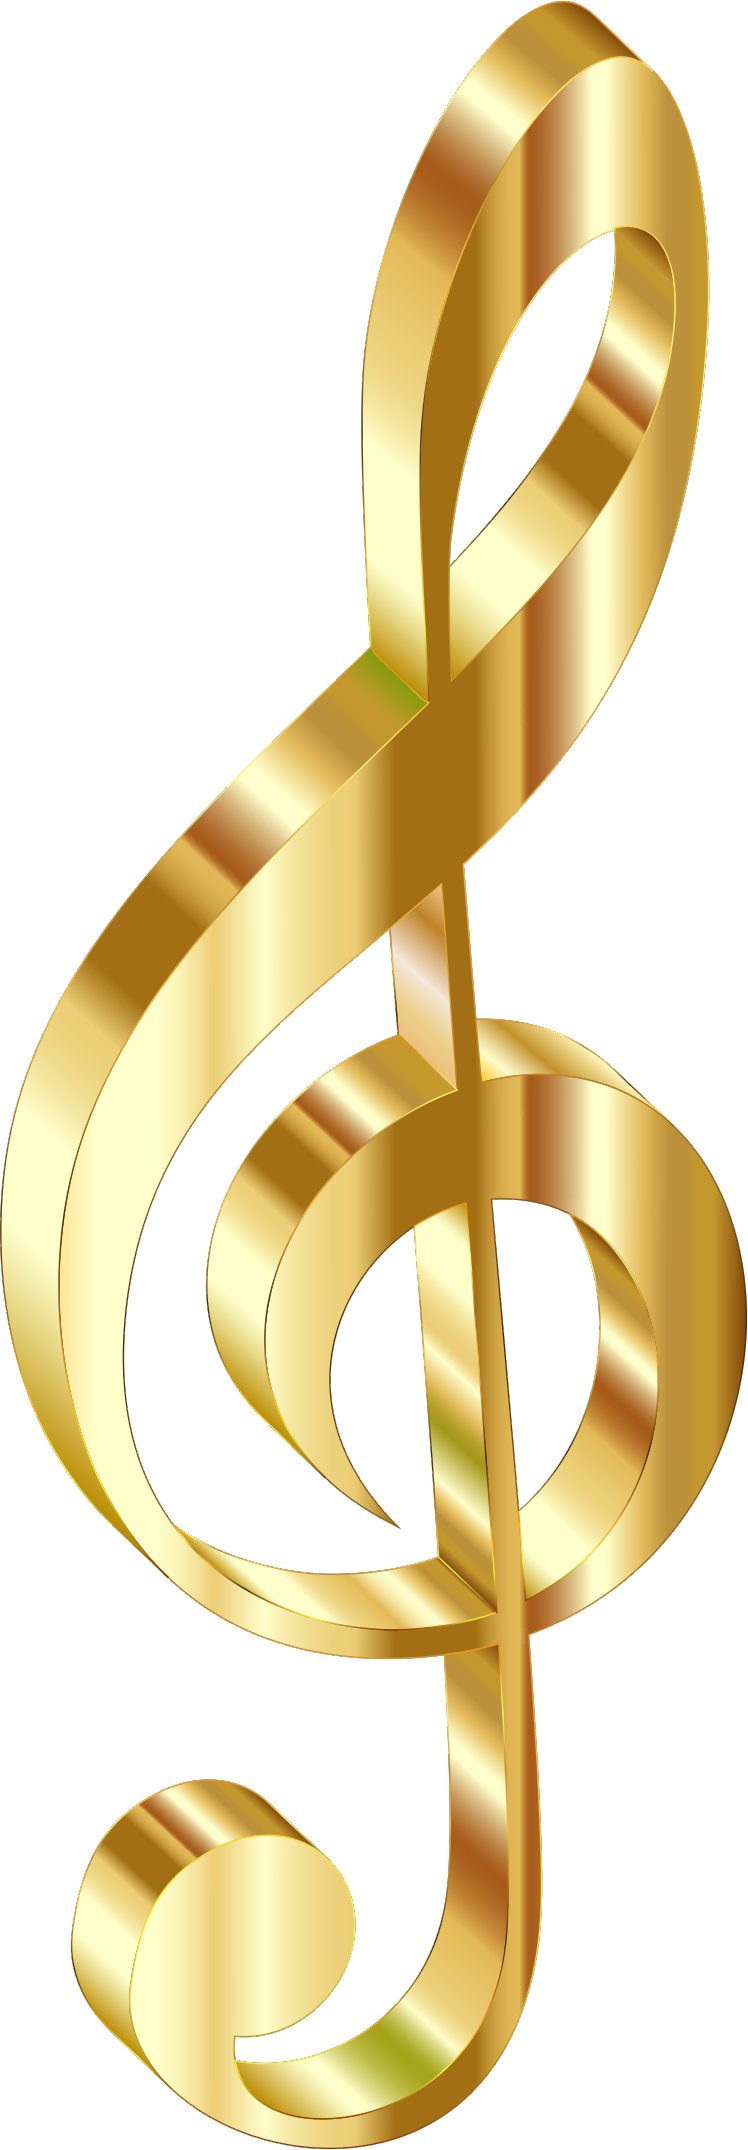 2 clipart gold. D clef no background